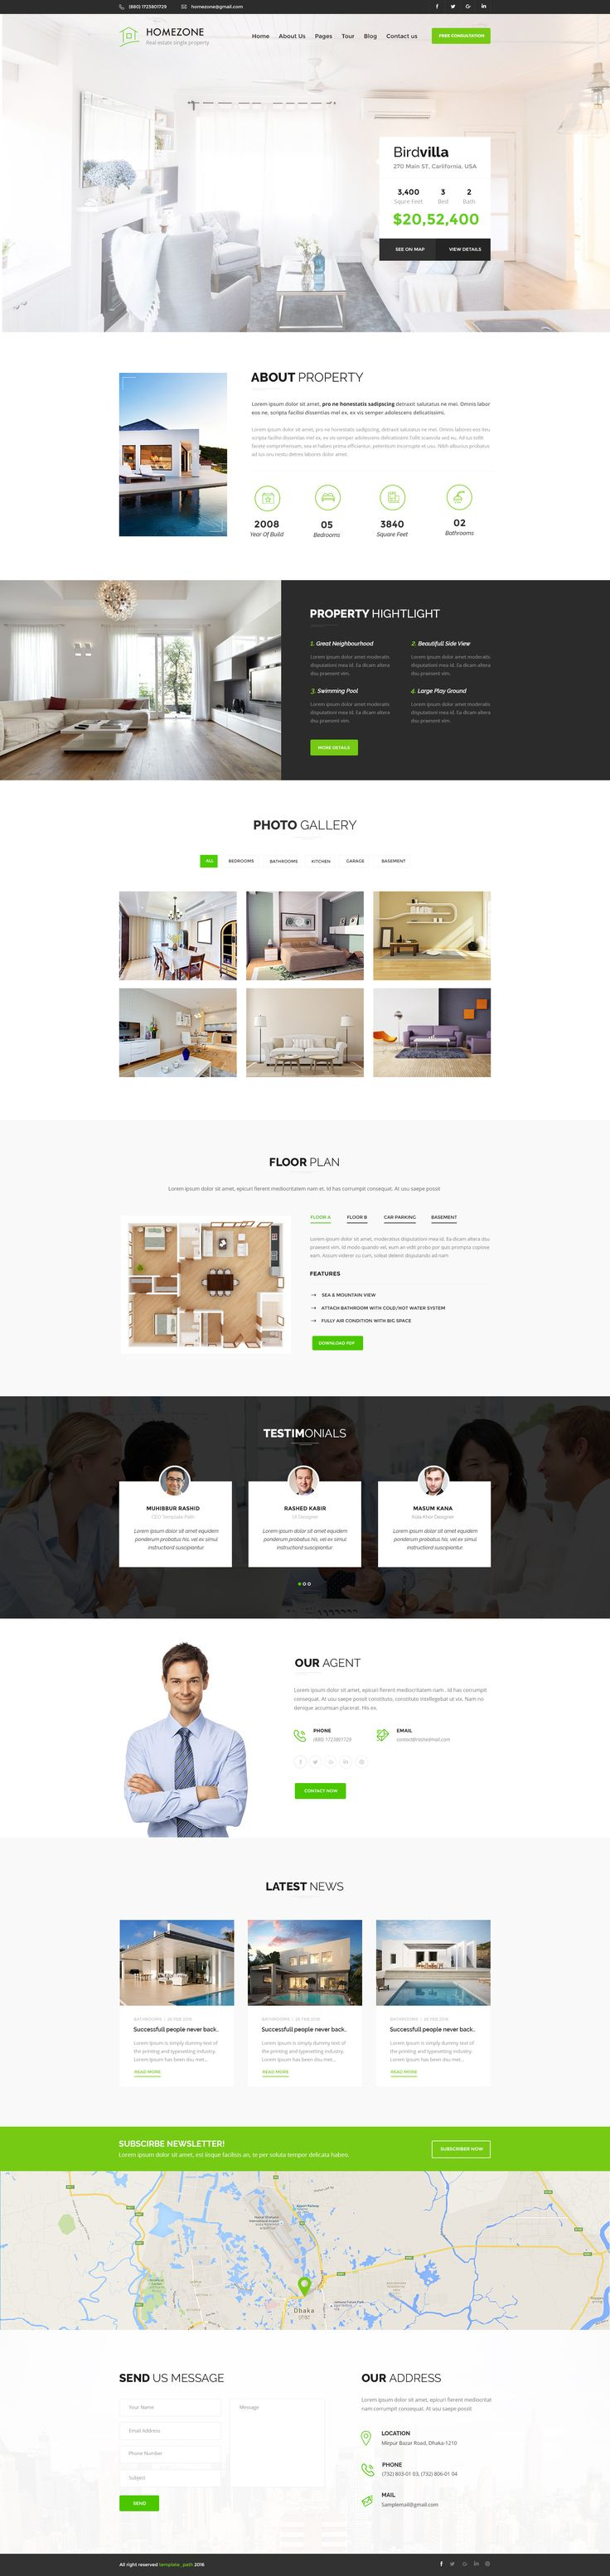 Homezone is a professional, modern crafted PSD template   Download : https://themeforest.net/item/homezone-single-property-real-estate-psd-template/16722027?ref=sinzo